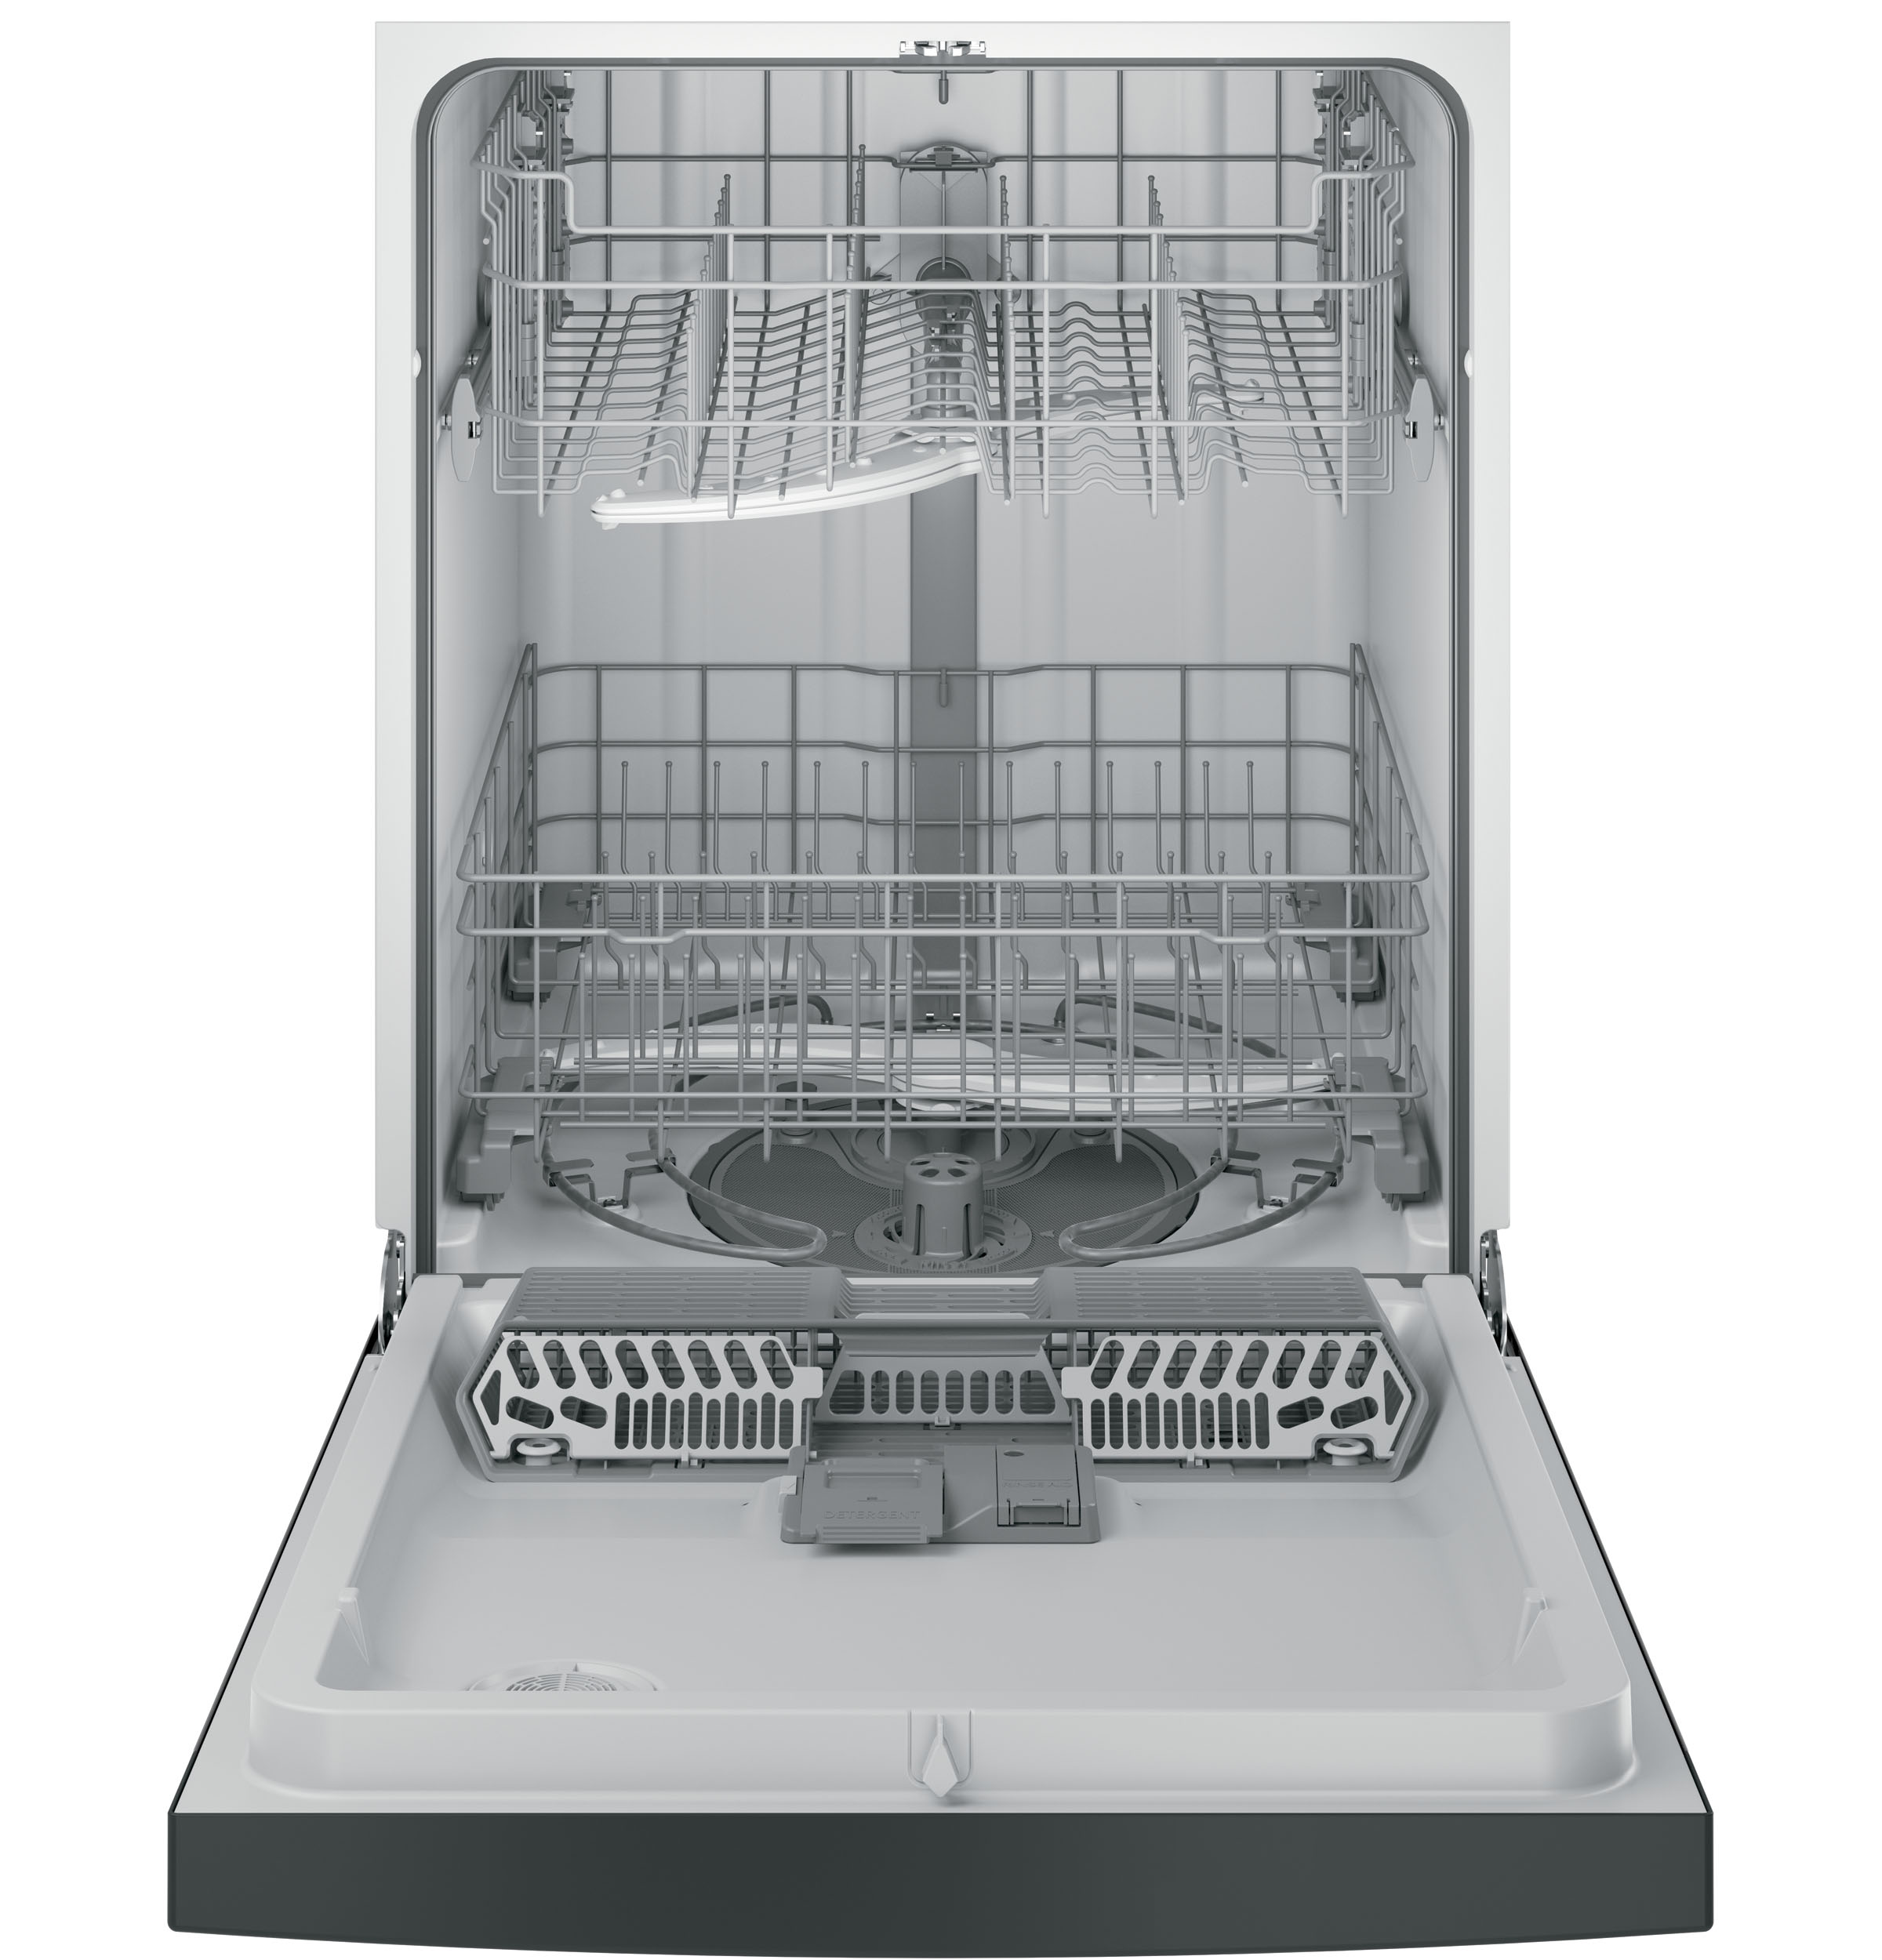 Ge dishwasher with front controls gdf510psjss ge appliances product image product image product image publicscrutiny Gallery